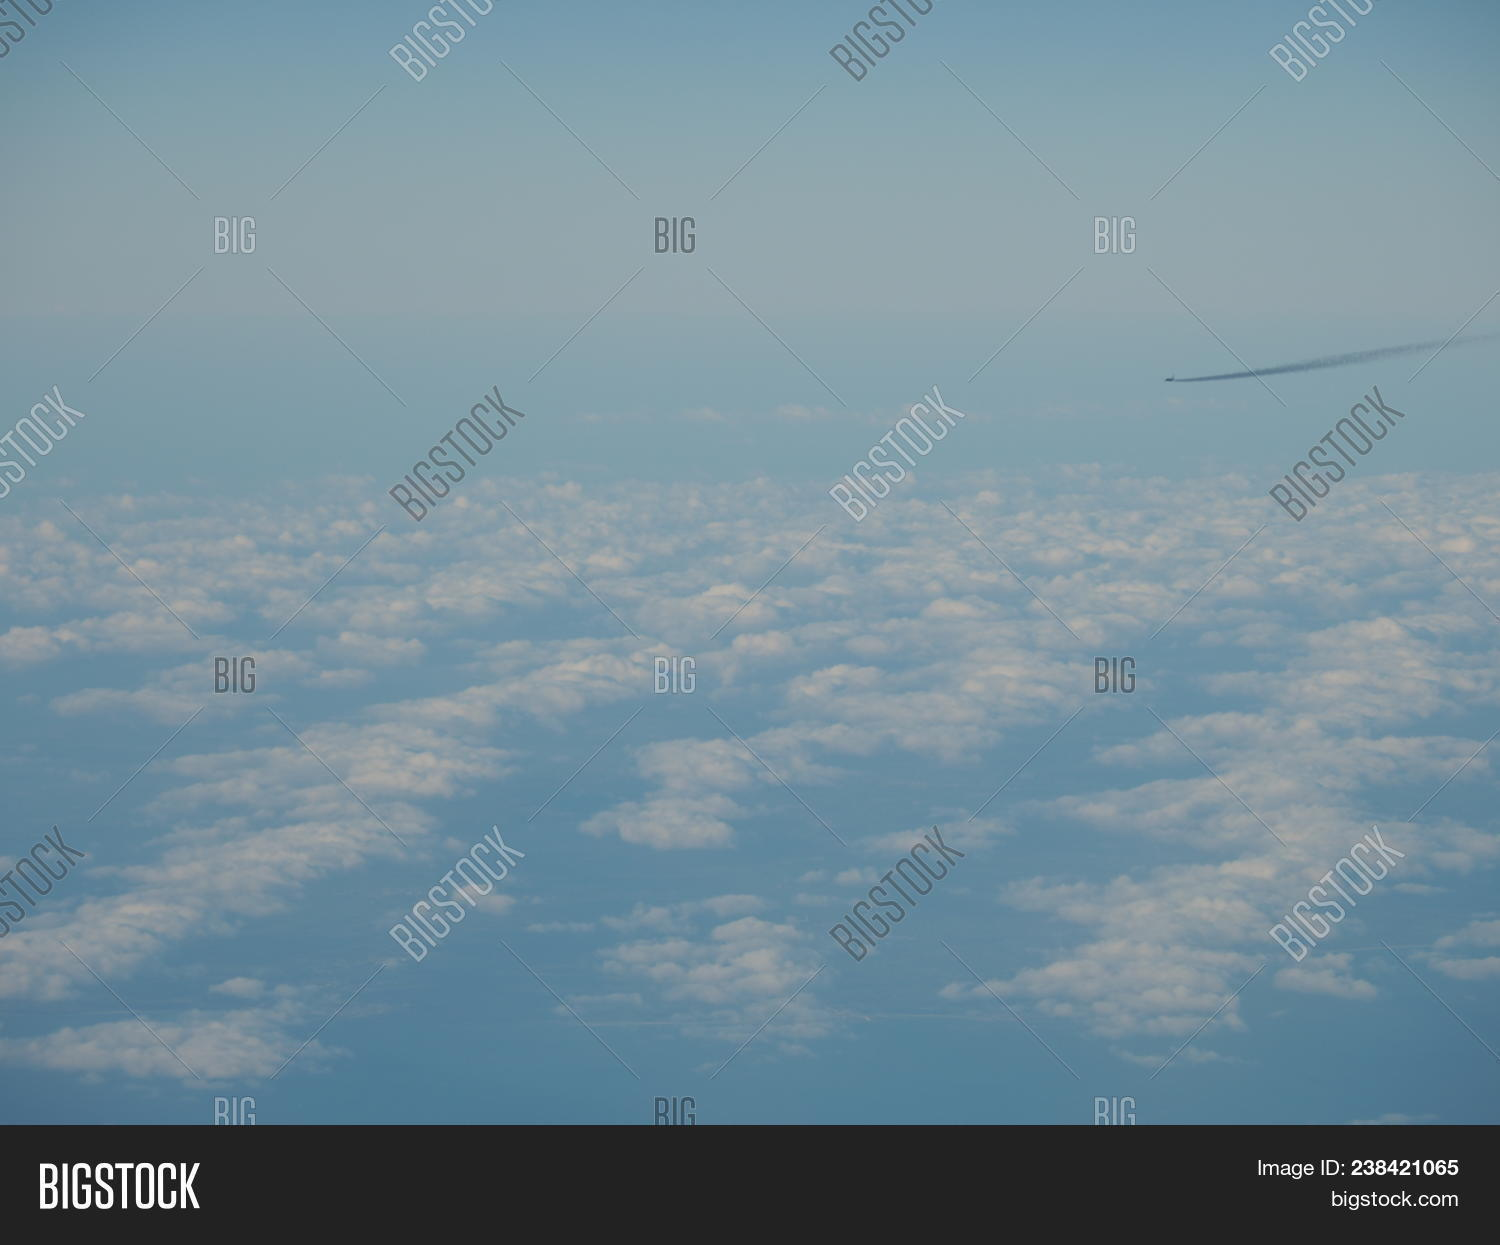 above,adventure,aerial,aeroplane,aerospace,air,aircraft,airline,airplane,altitude,atmosphere,aviation,background,beautiful,blue,cloud,cloudscape,cloudy,flight,fly,flying,heaven,high,holiday,horizon,jet,looking,natural,nature,panorama,panoramic,plane,scenery,scenic,sea,sky,skyline,space,sunset,top,tourism,transport,transportation,travel,trip,vacation,view,white,window